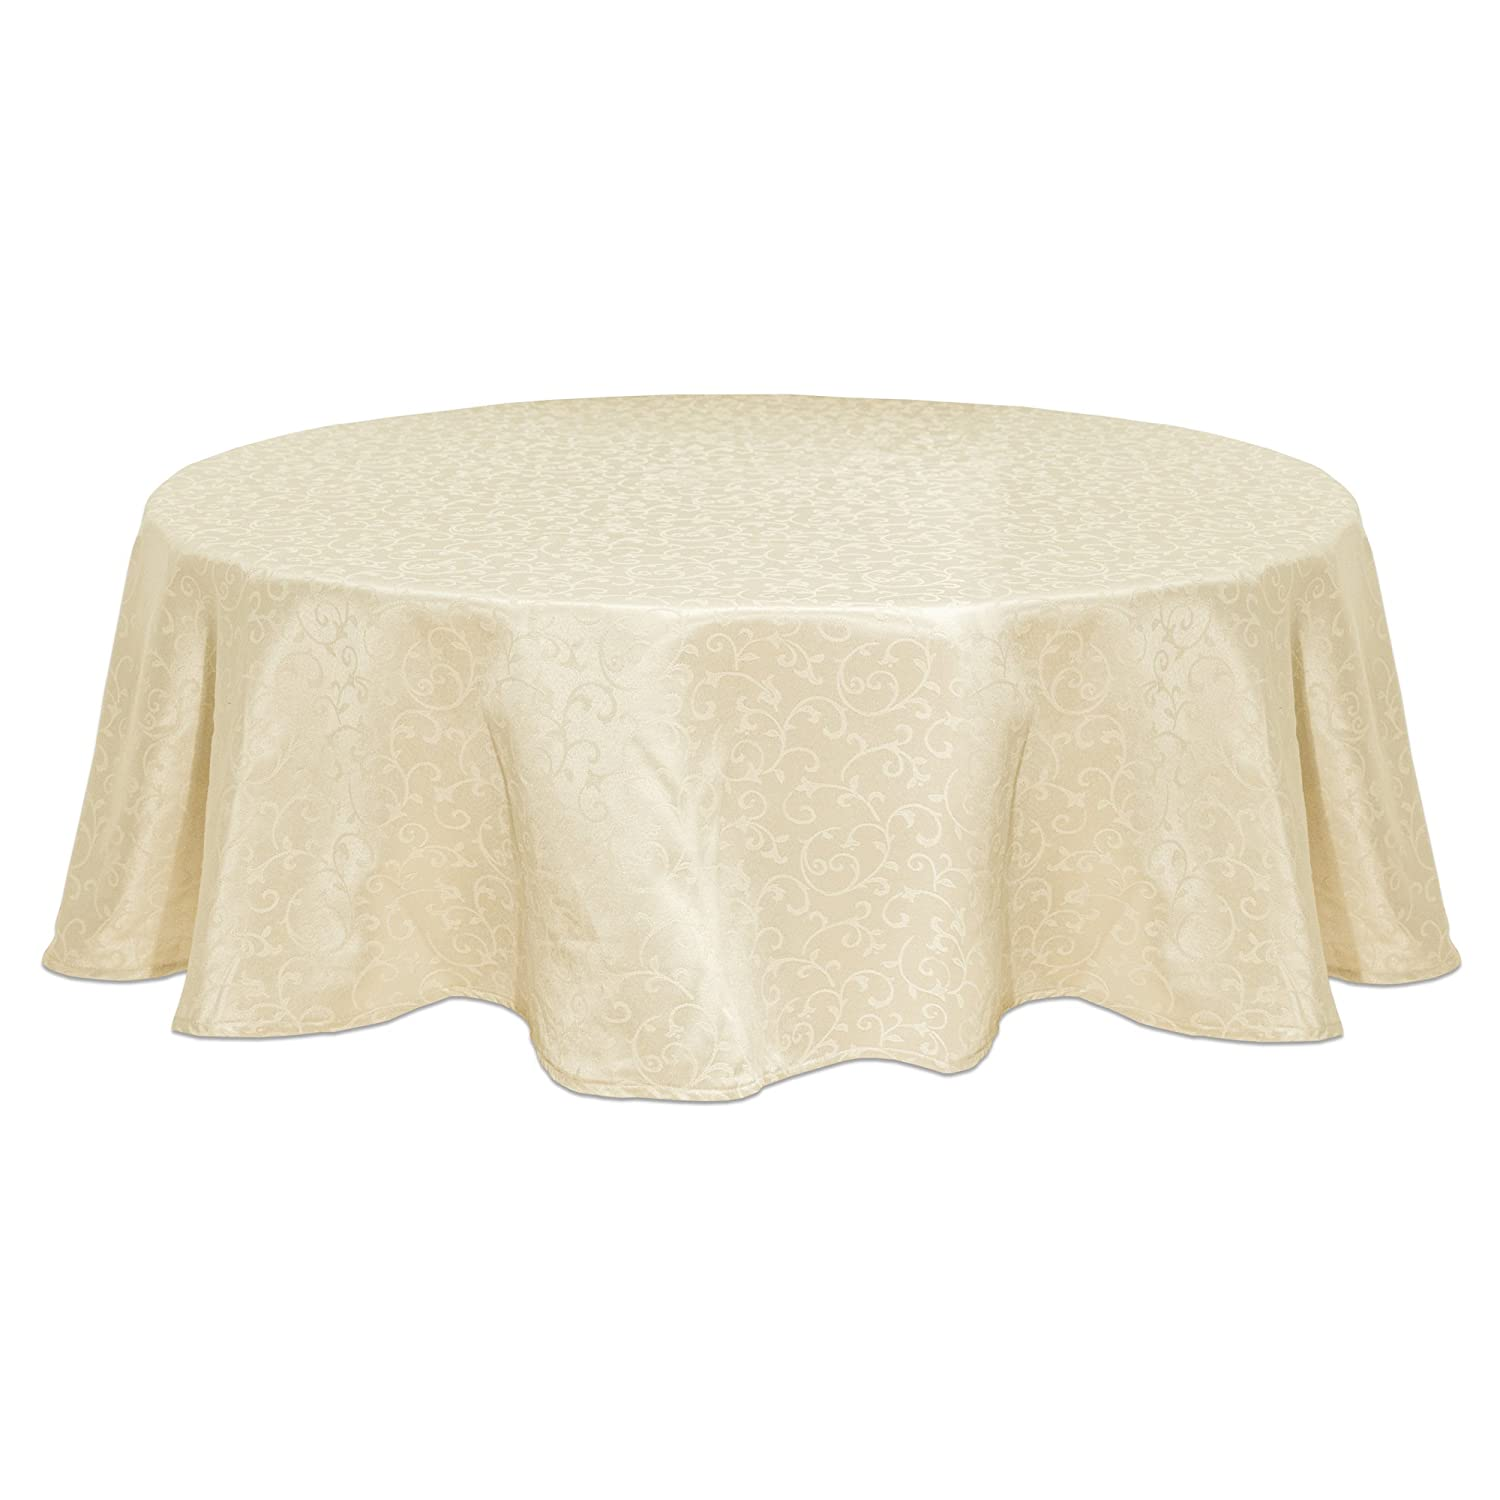 Amazon.com: Lenox Opal Innocence 90 Inch Round Tablecloth, Ivory: Home U0026  Kitchen